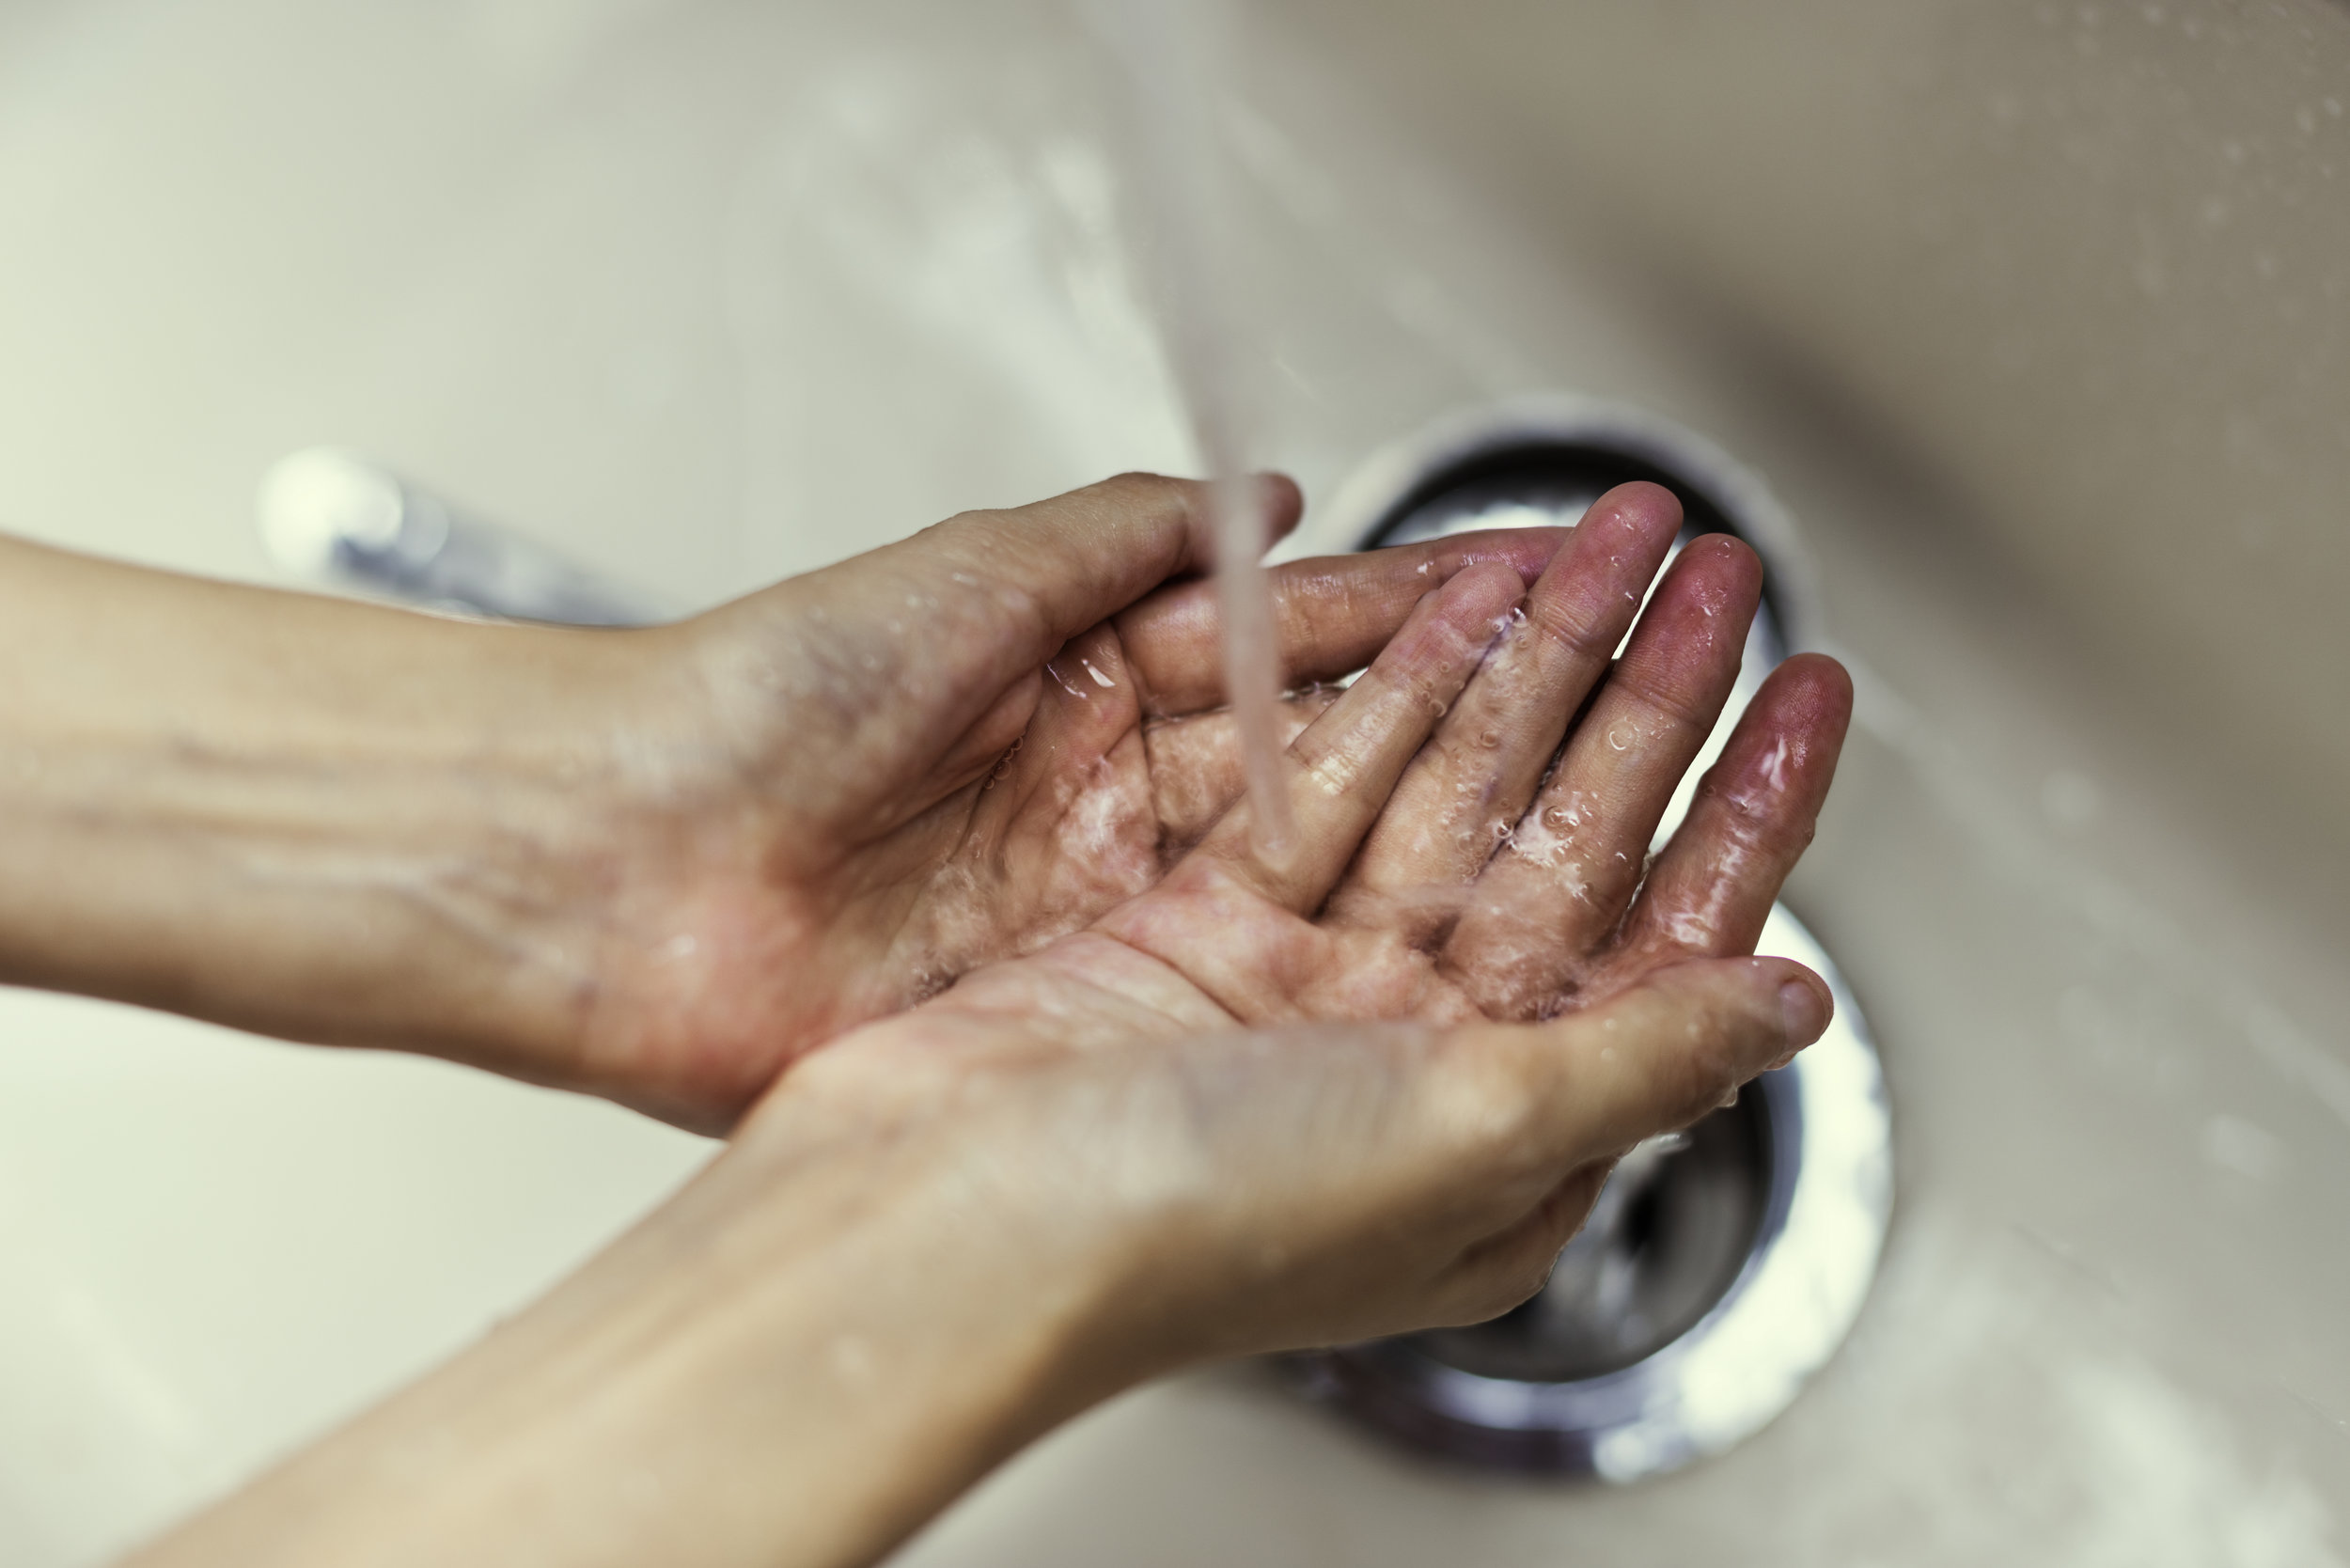 8. Practice good hygiene - Limiting your exposure to illness by avoiding germs is key.